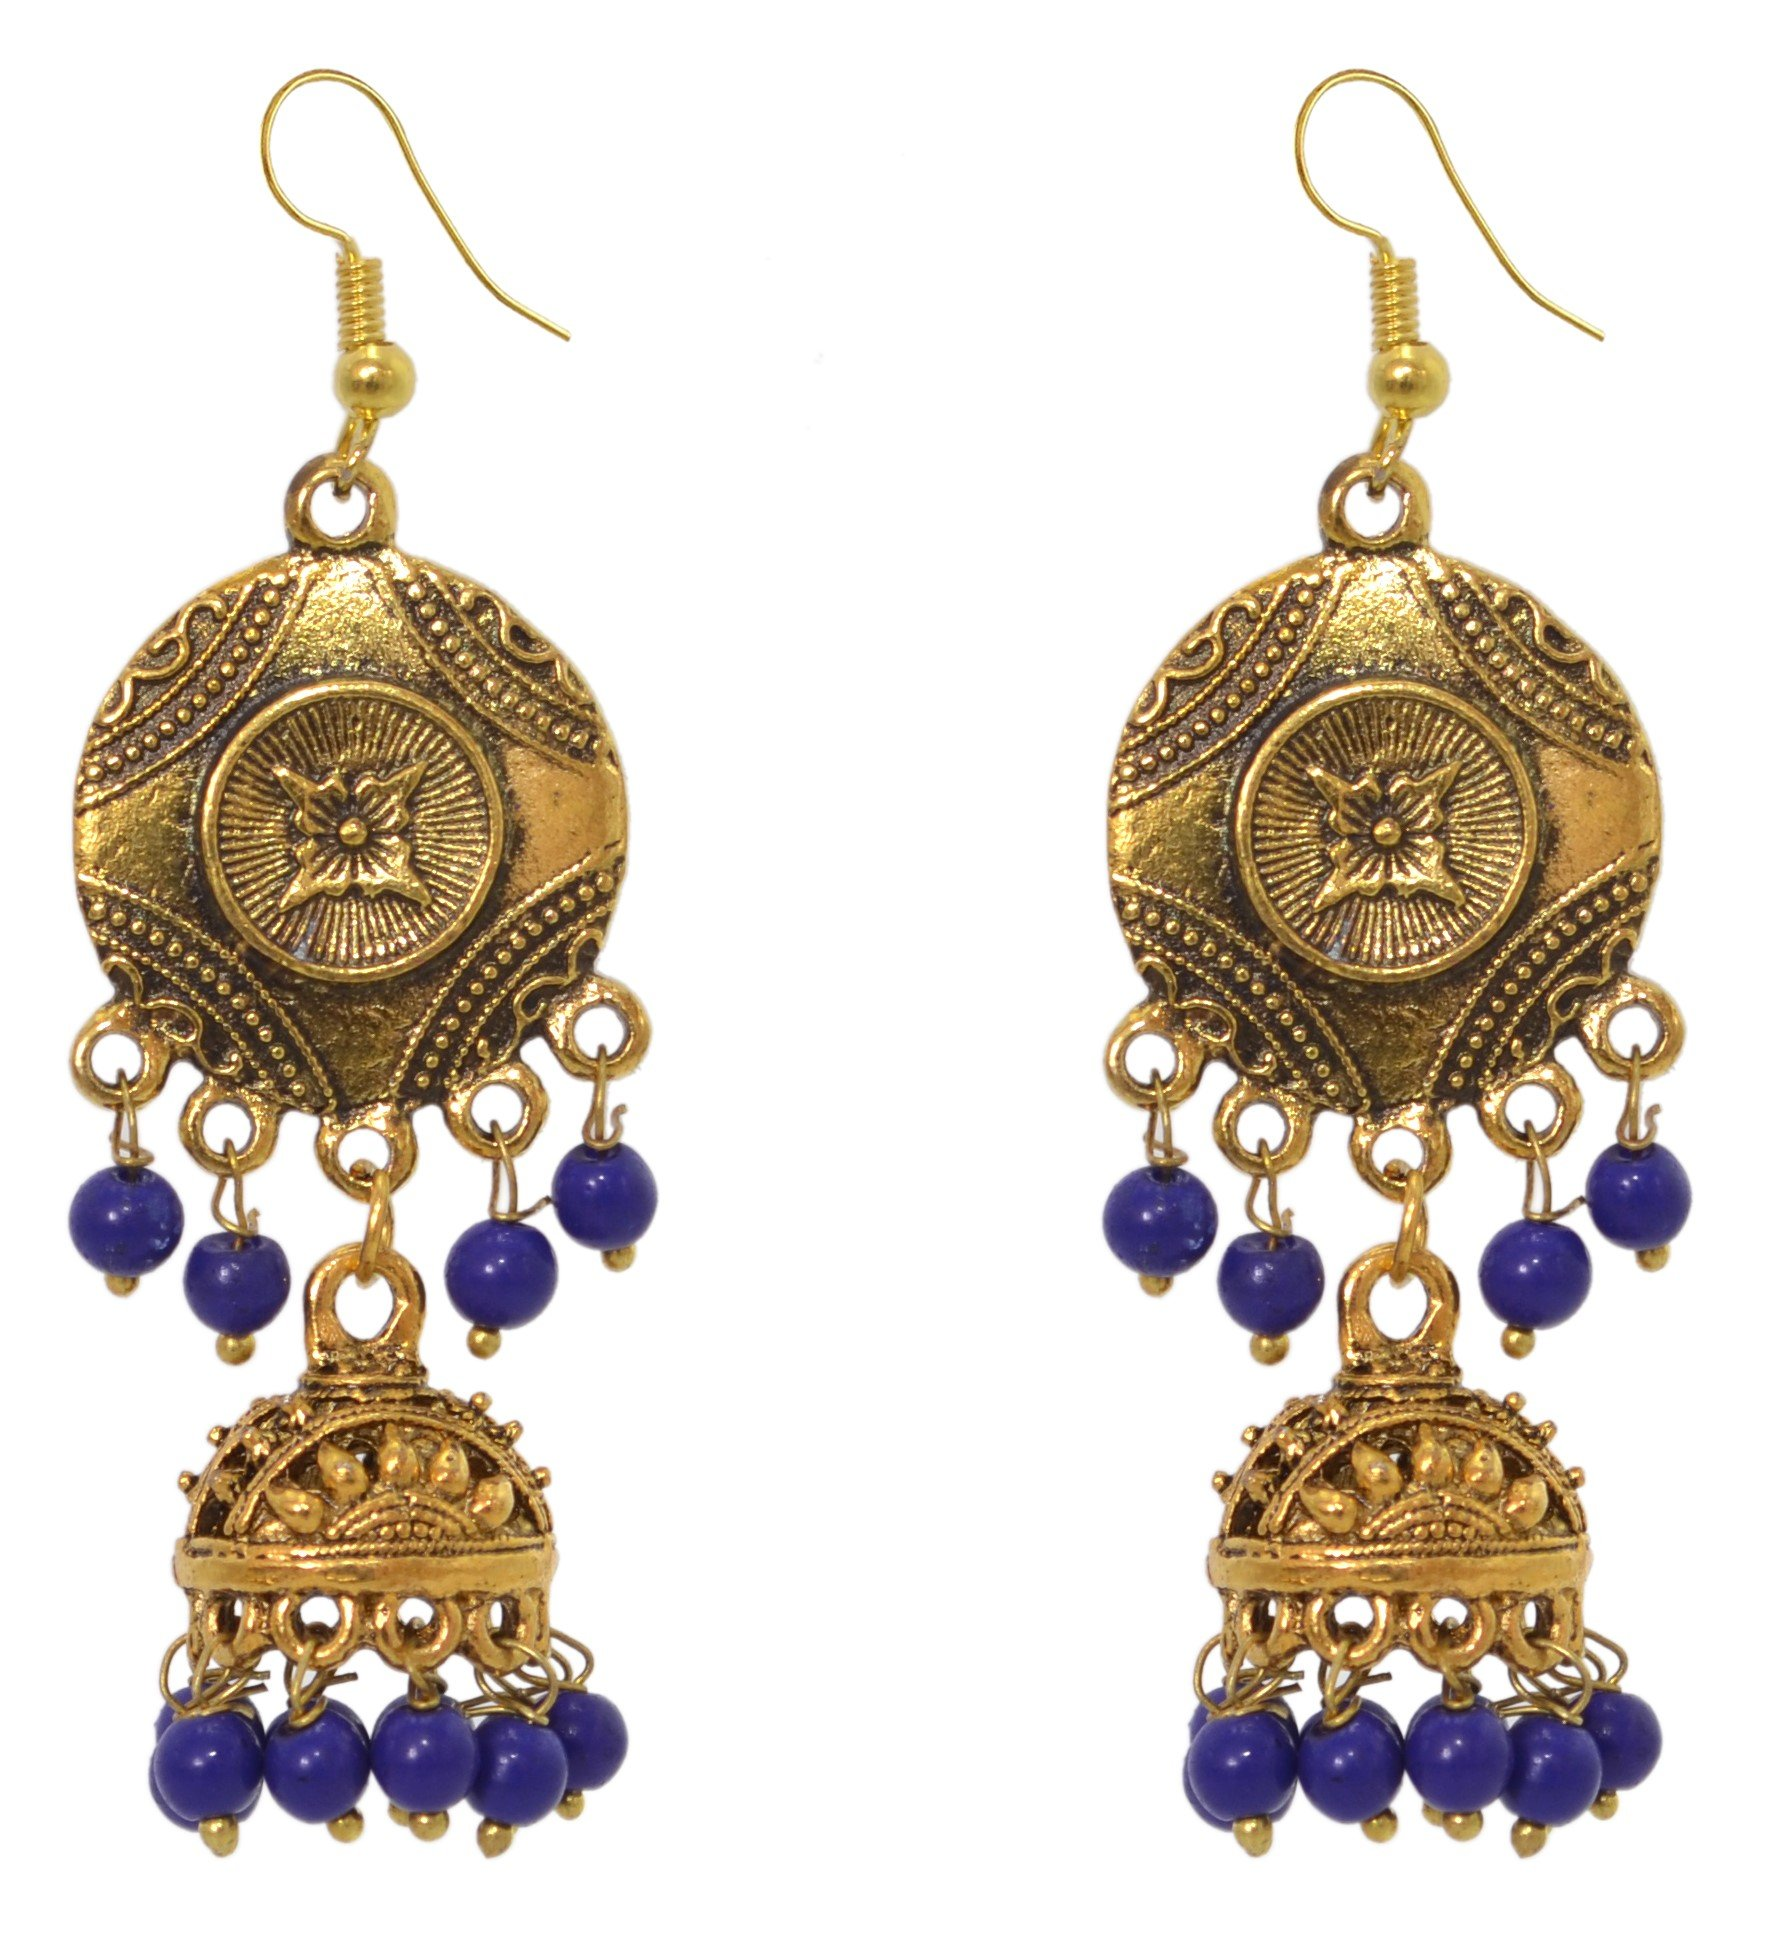 Sansar India Oxidized Antique Golden Beaded Jhumka Jhumki Indian Earrings Jewelry for Girls and Women